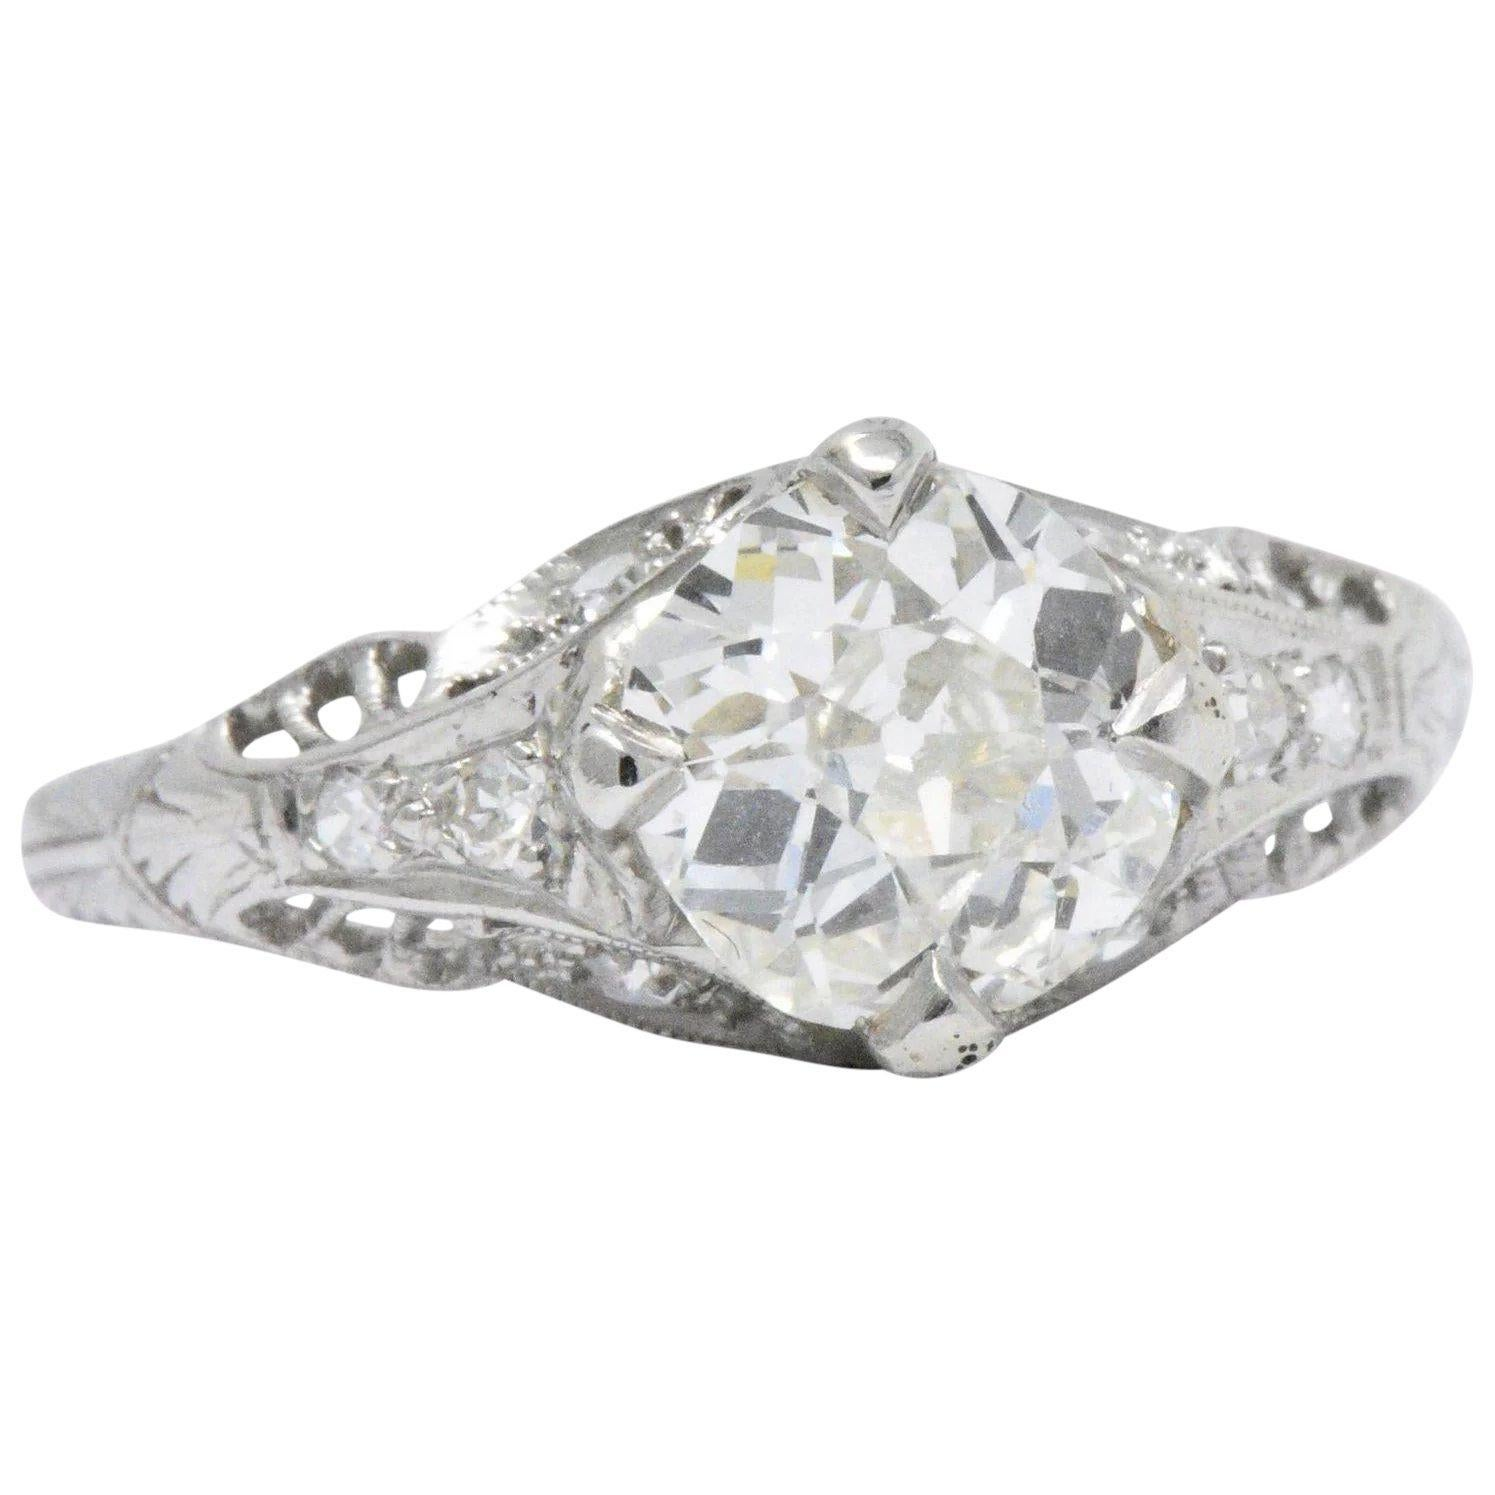 Art Deco 1.44 Carats Diamond Platinum Foliate Engagement Ring GIA